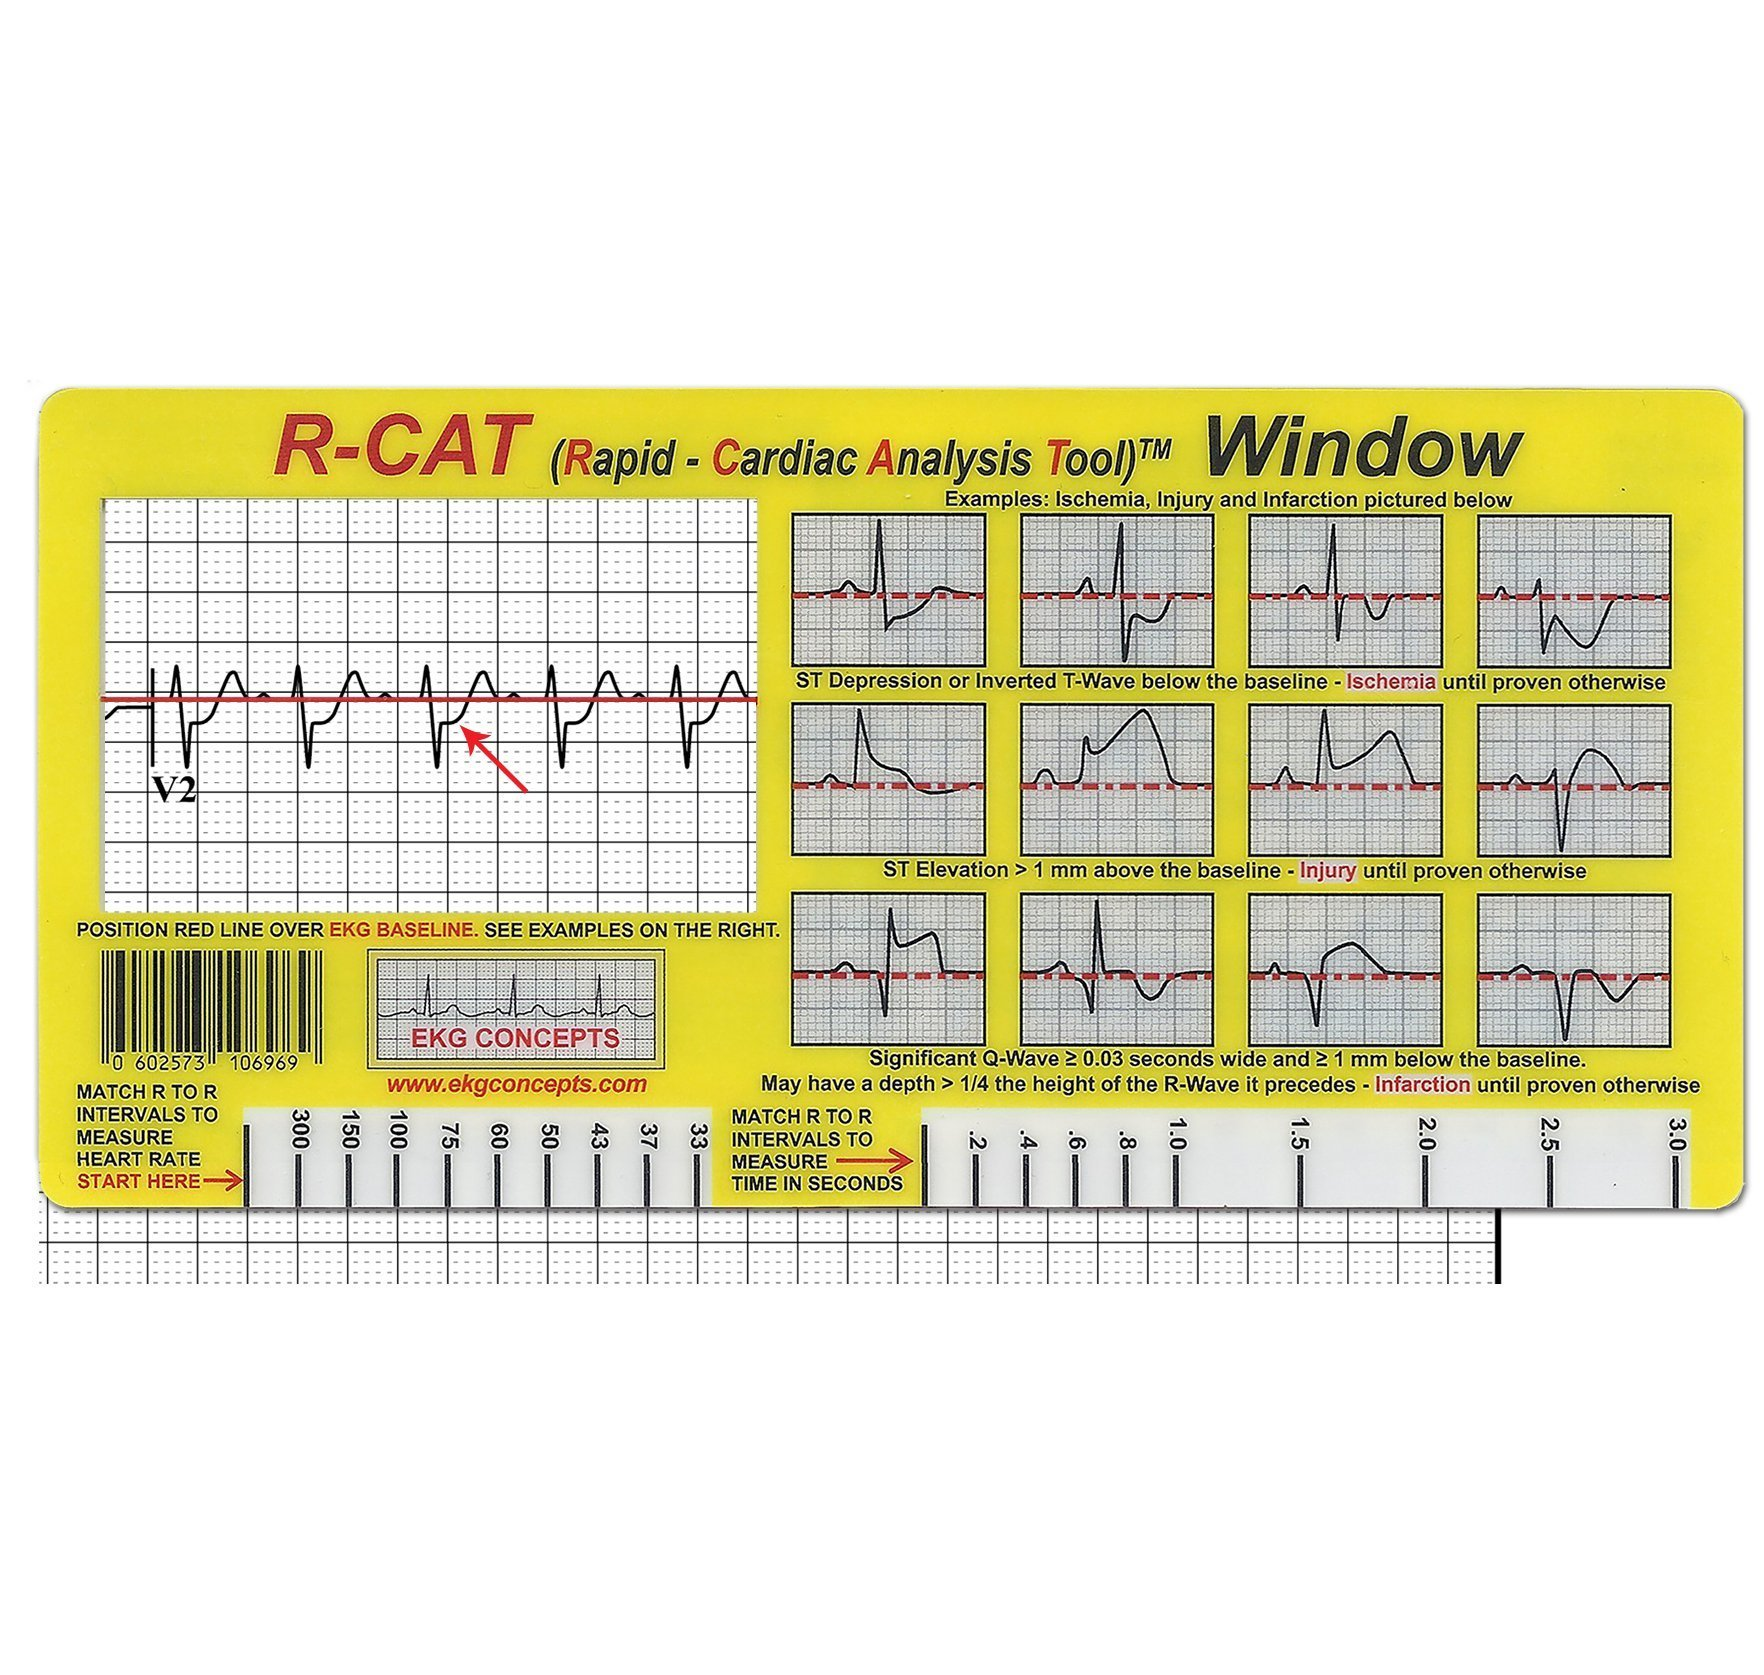 R-CAT EKG Window